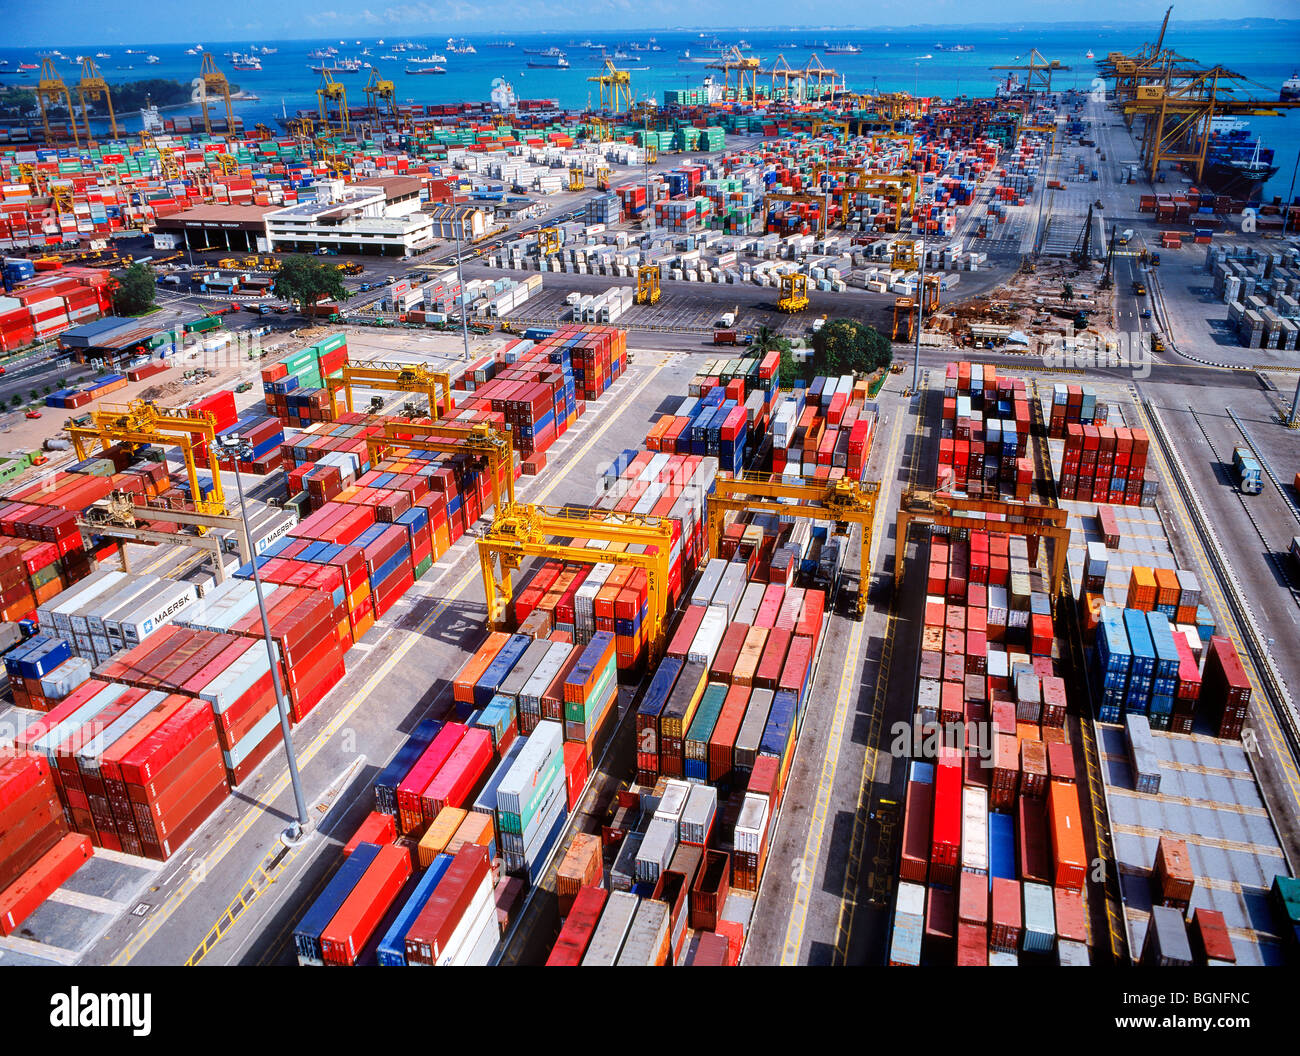 Overview Of Cargo Container Docks In Singapore Packed With